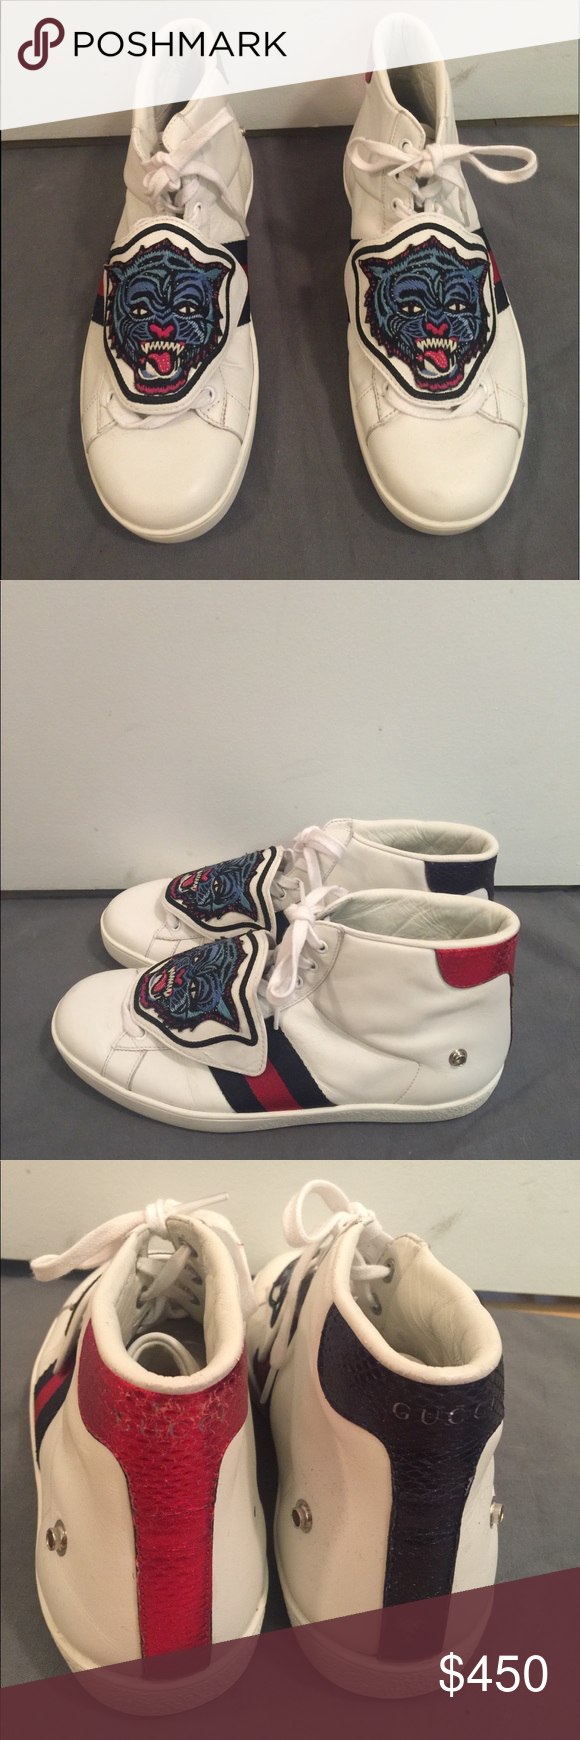 63a29cd94e2 Gucci Ace high-Top Sneakers High-top authentic Gucci Sneakers Two Removable  embroidered patches